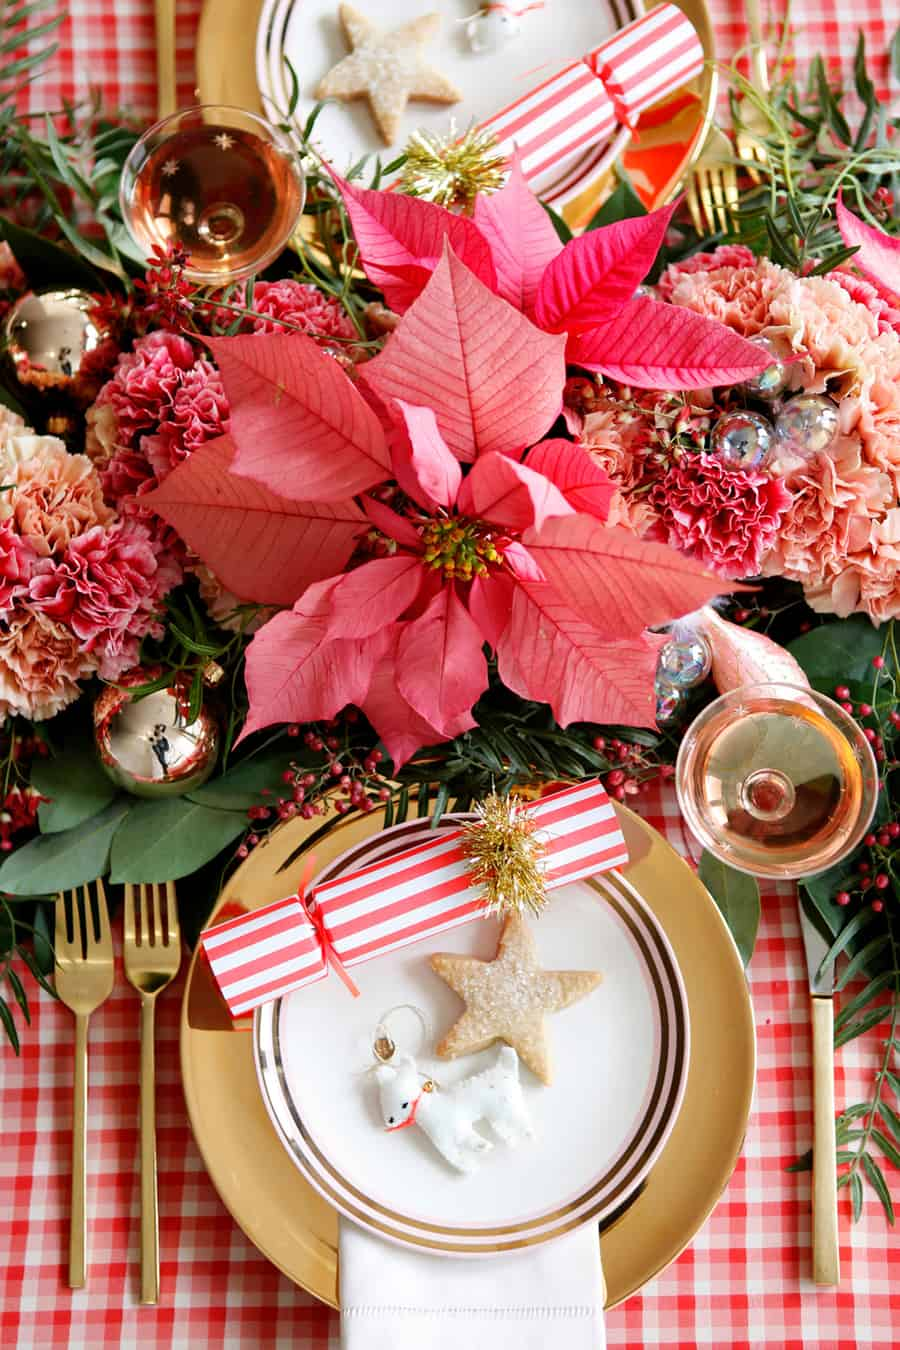 Christmas table setting with plaid table, flowers, cookies and ornaments